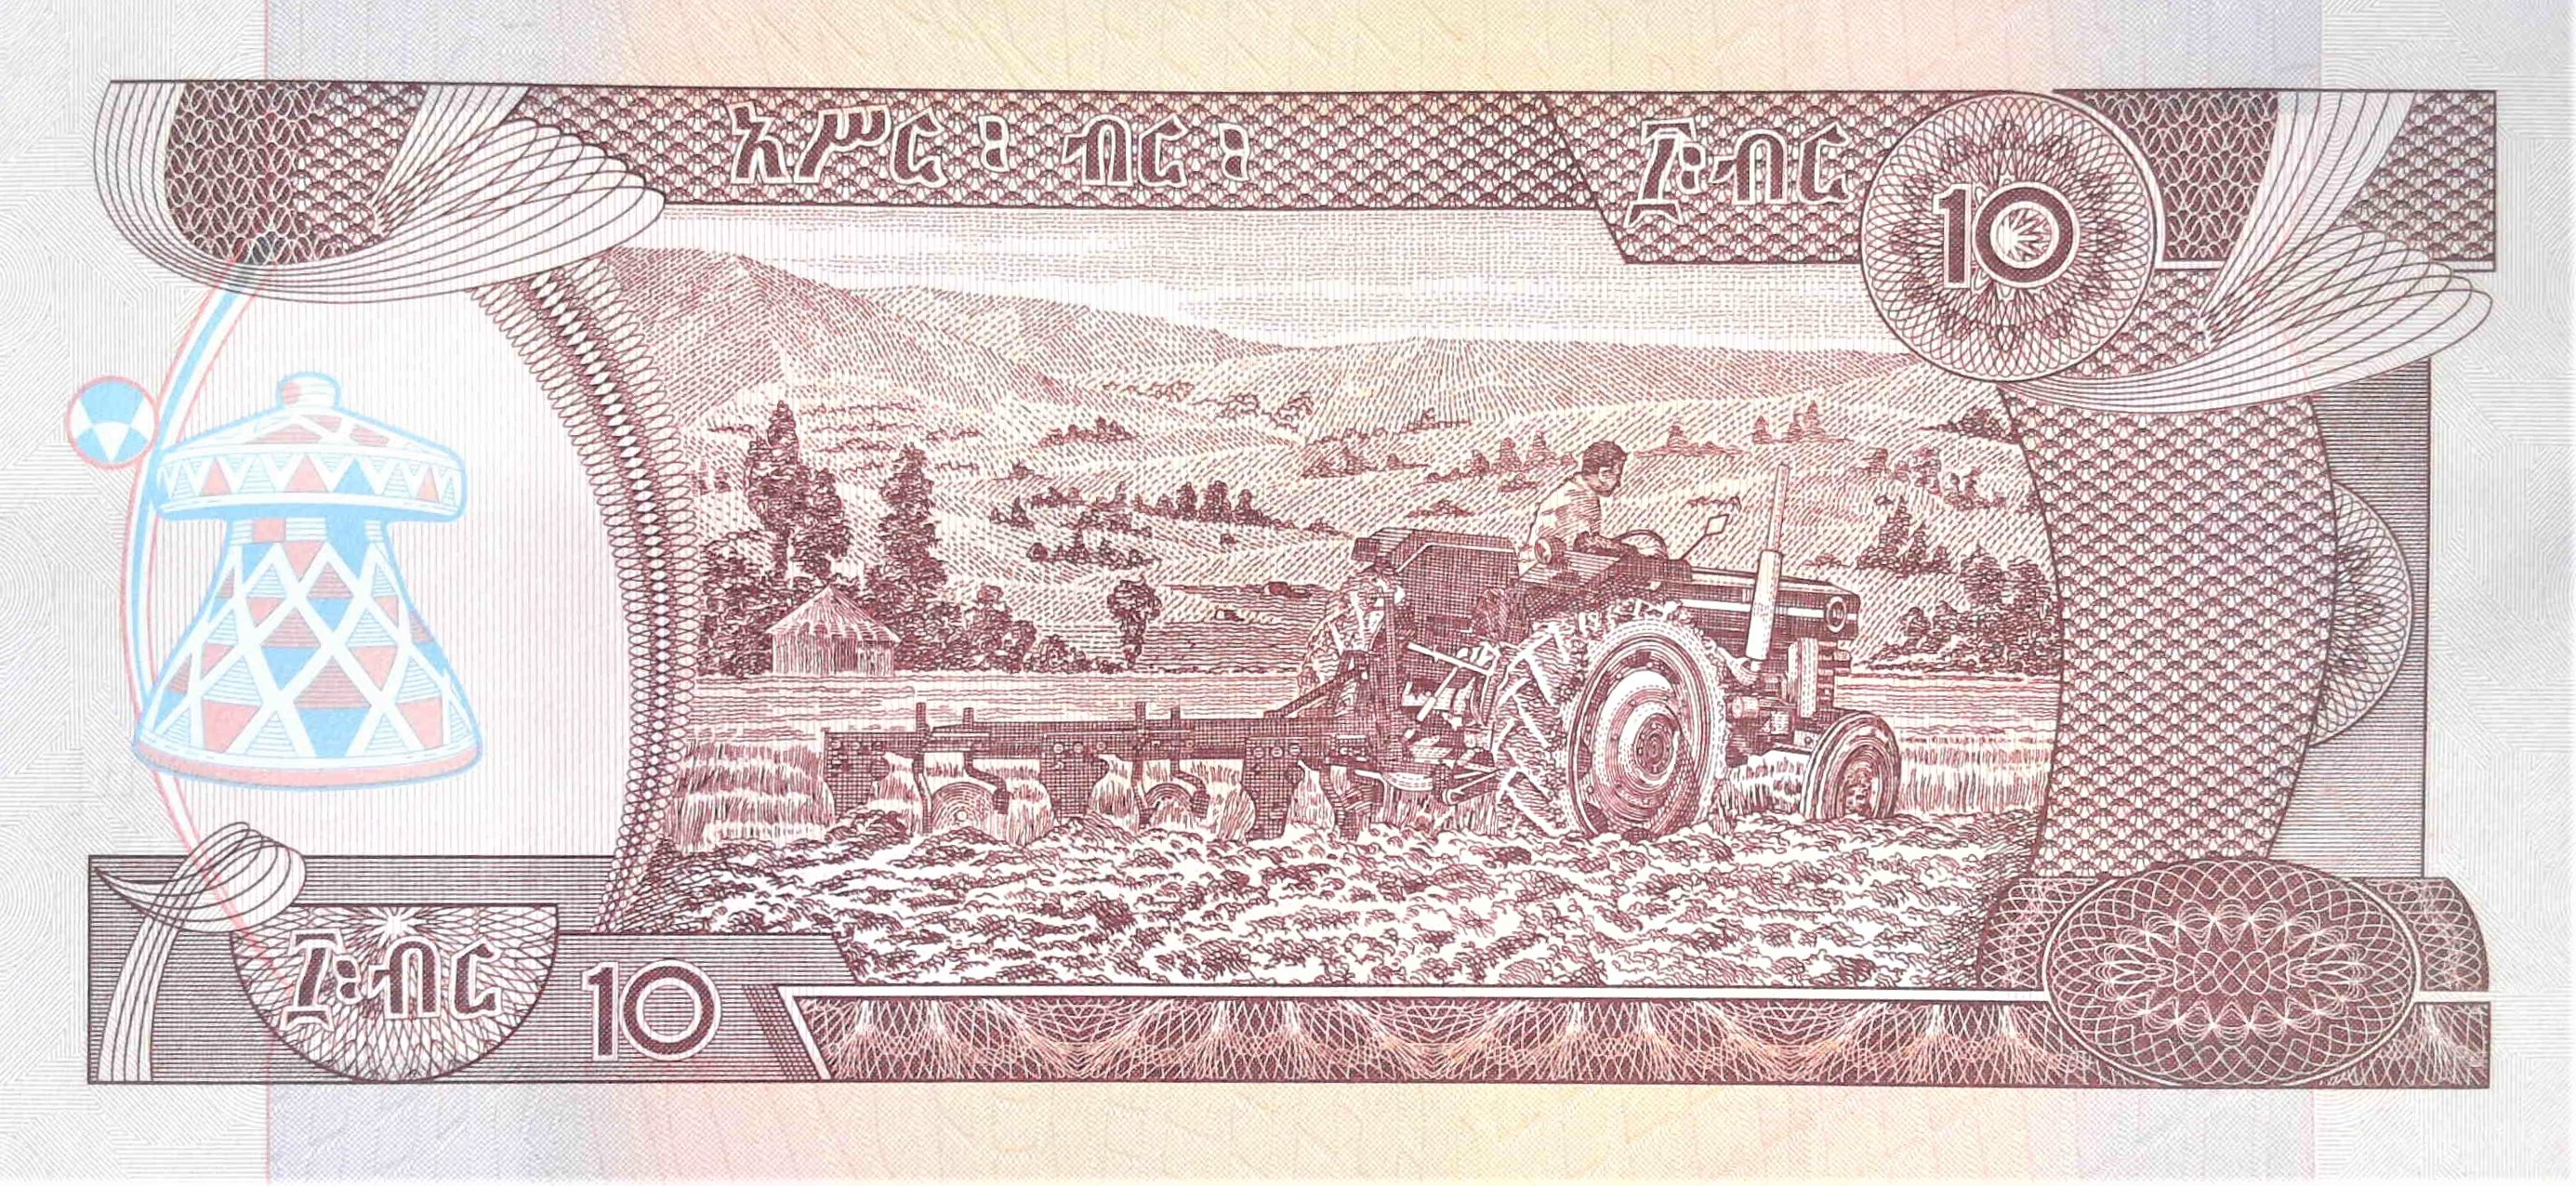 Ethiopia 10 Birr banknote year 2006 back, featuring man riding on tractor